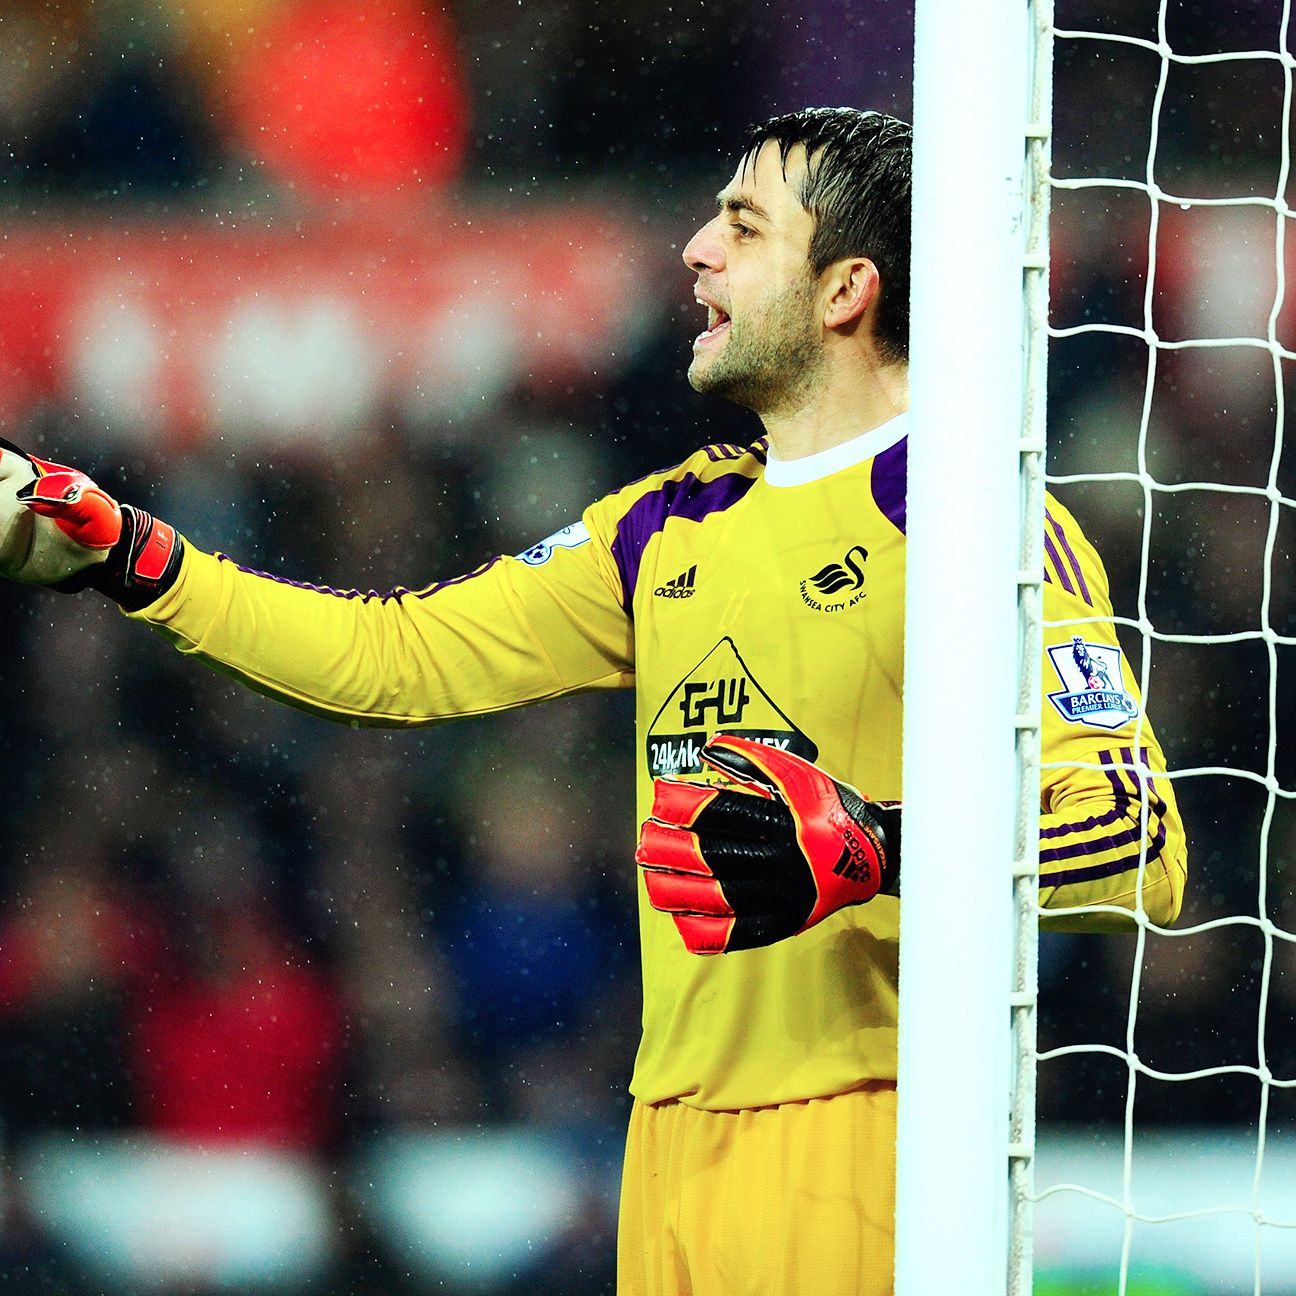 If not for the sure hands of goalkeeper Lukasz Fabianski, Swansea's Boxing Day could have easily ended in defeat.